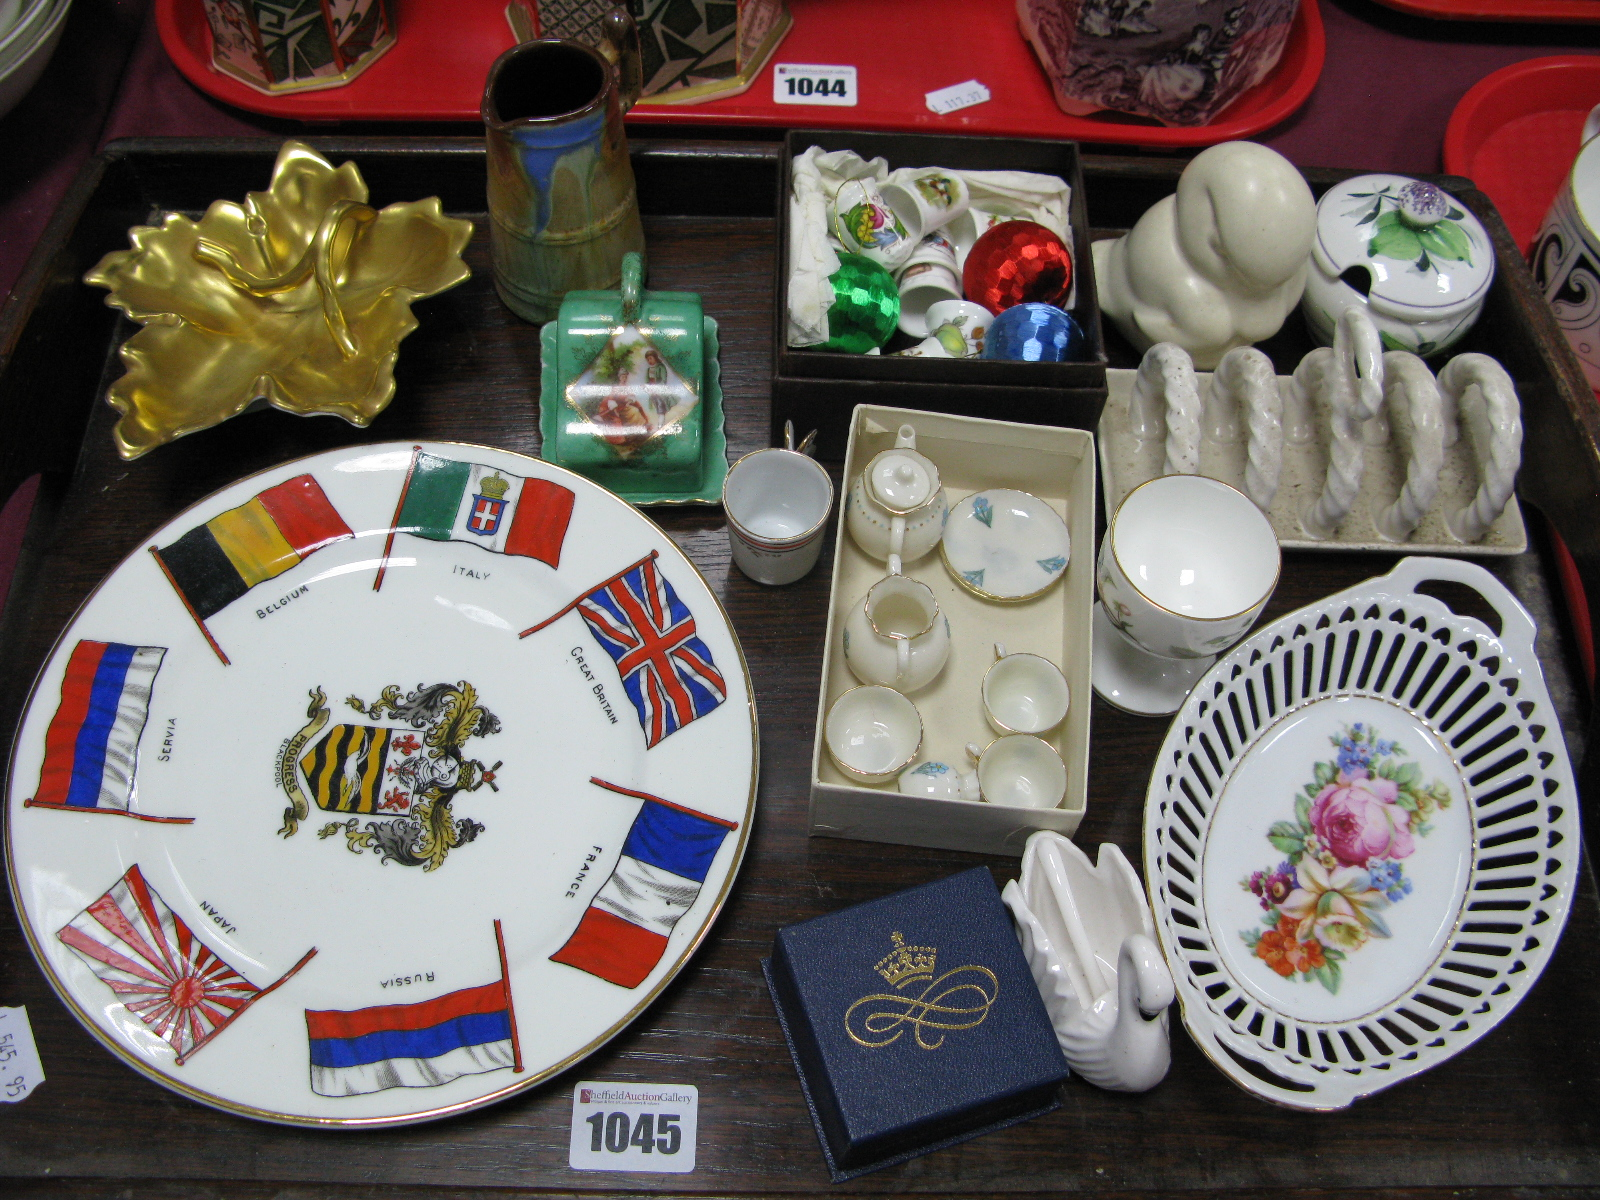 Lot 1045 - A Goss Minature Tea Set, seven Nations plate, thimbles etc:- One Tray